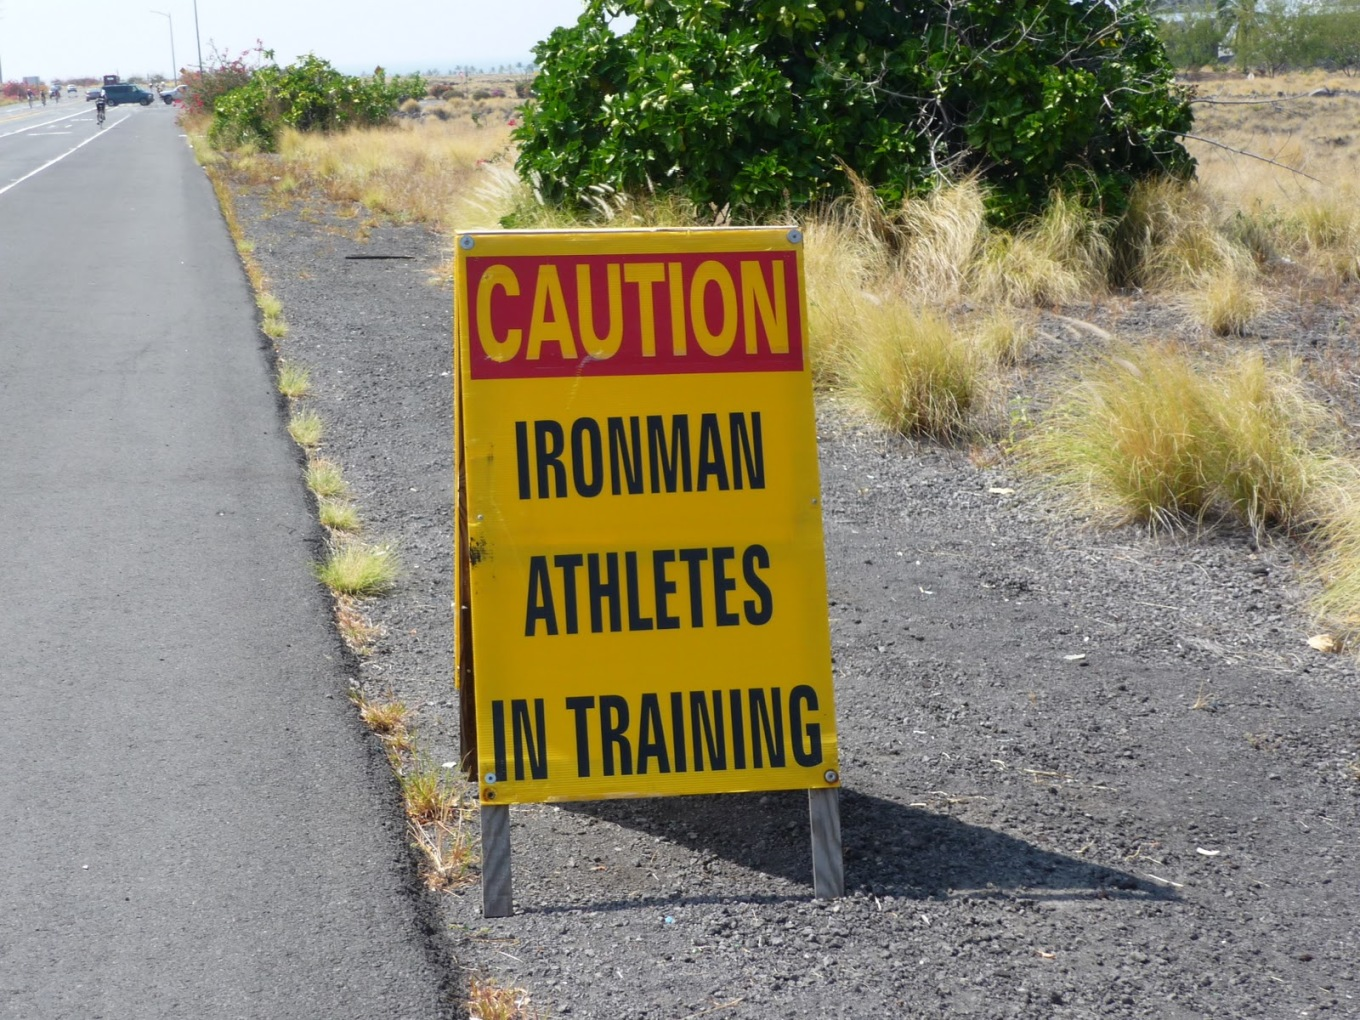 Athletes in training sign